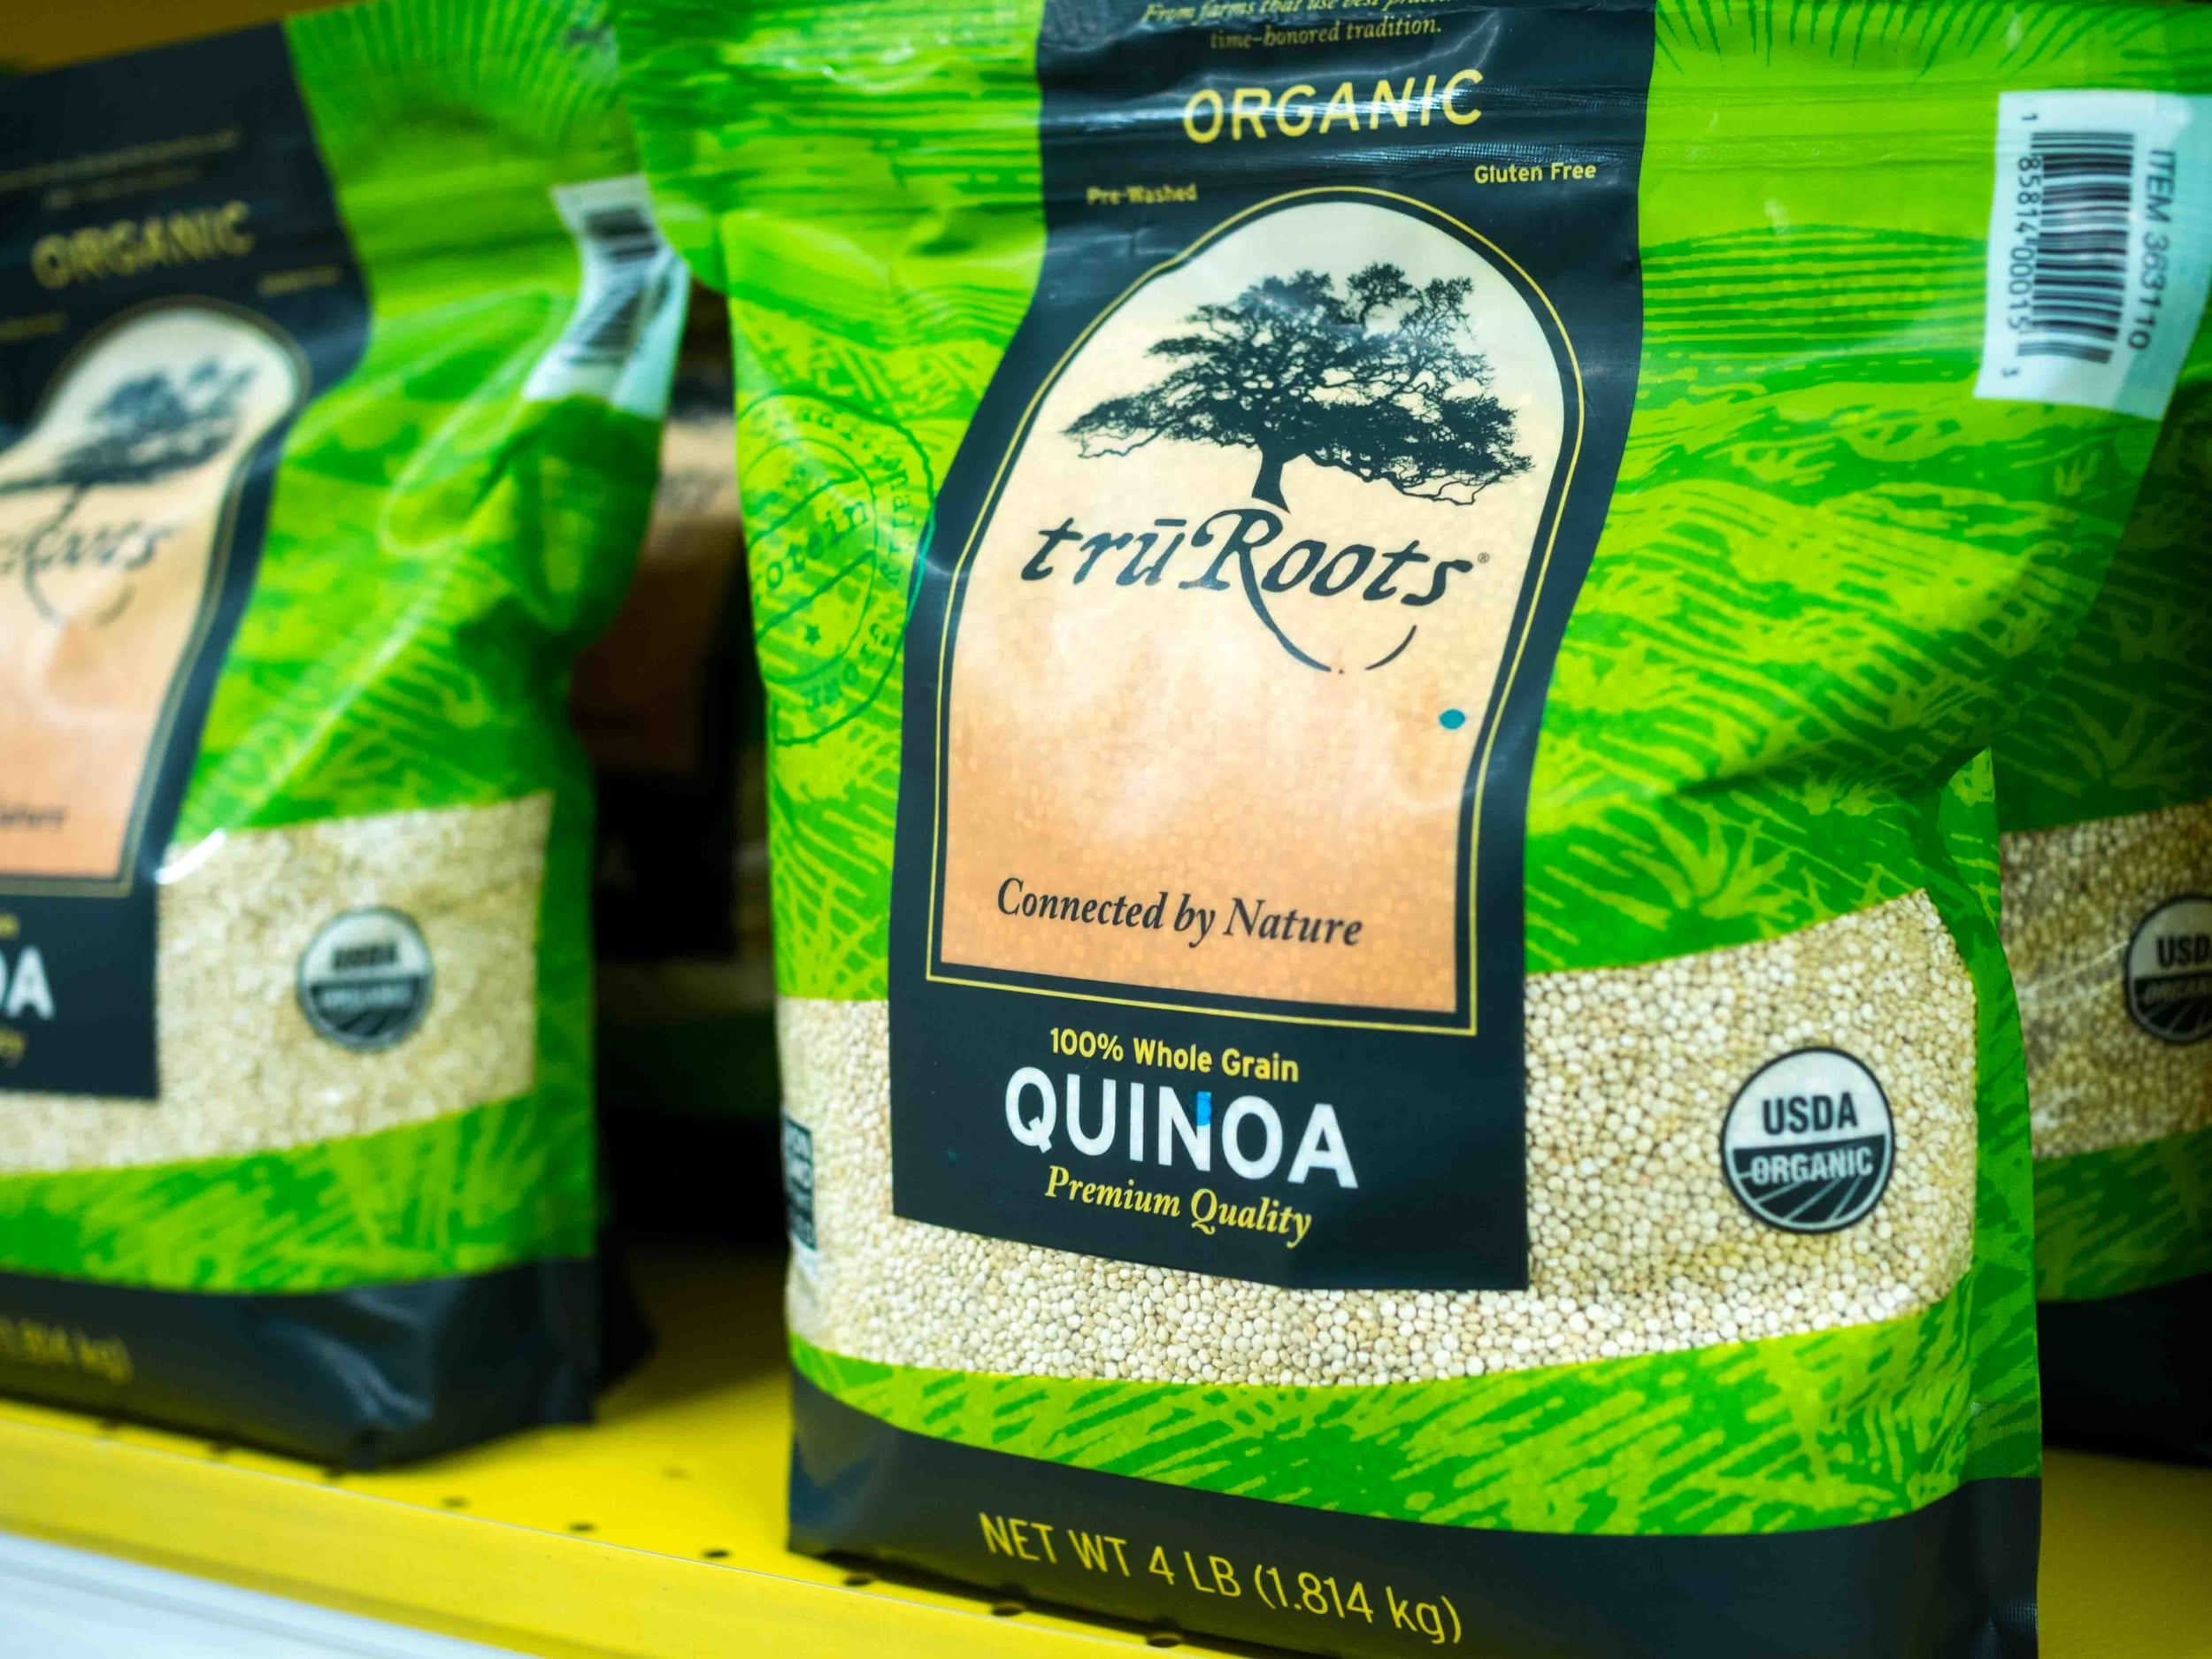 A healthy and nutritious GF grain - Quinoa